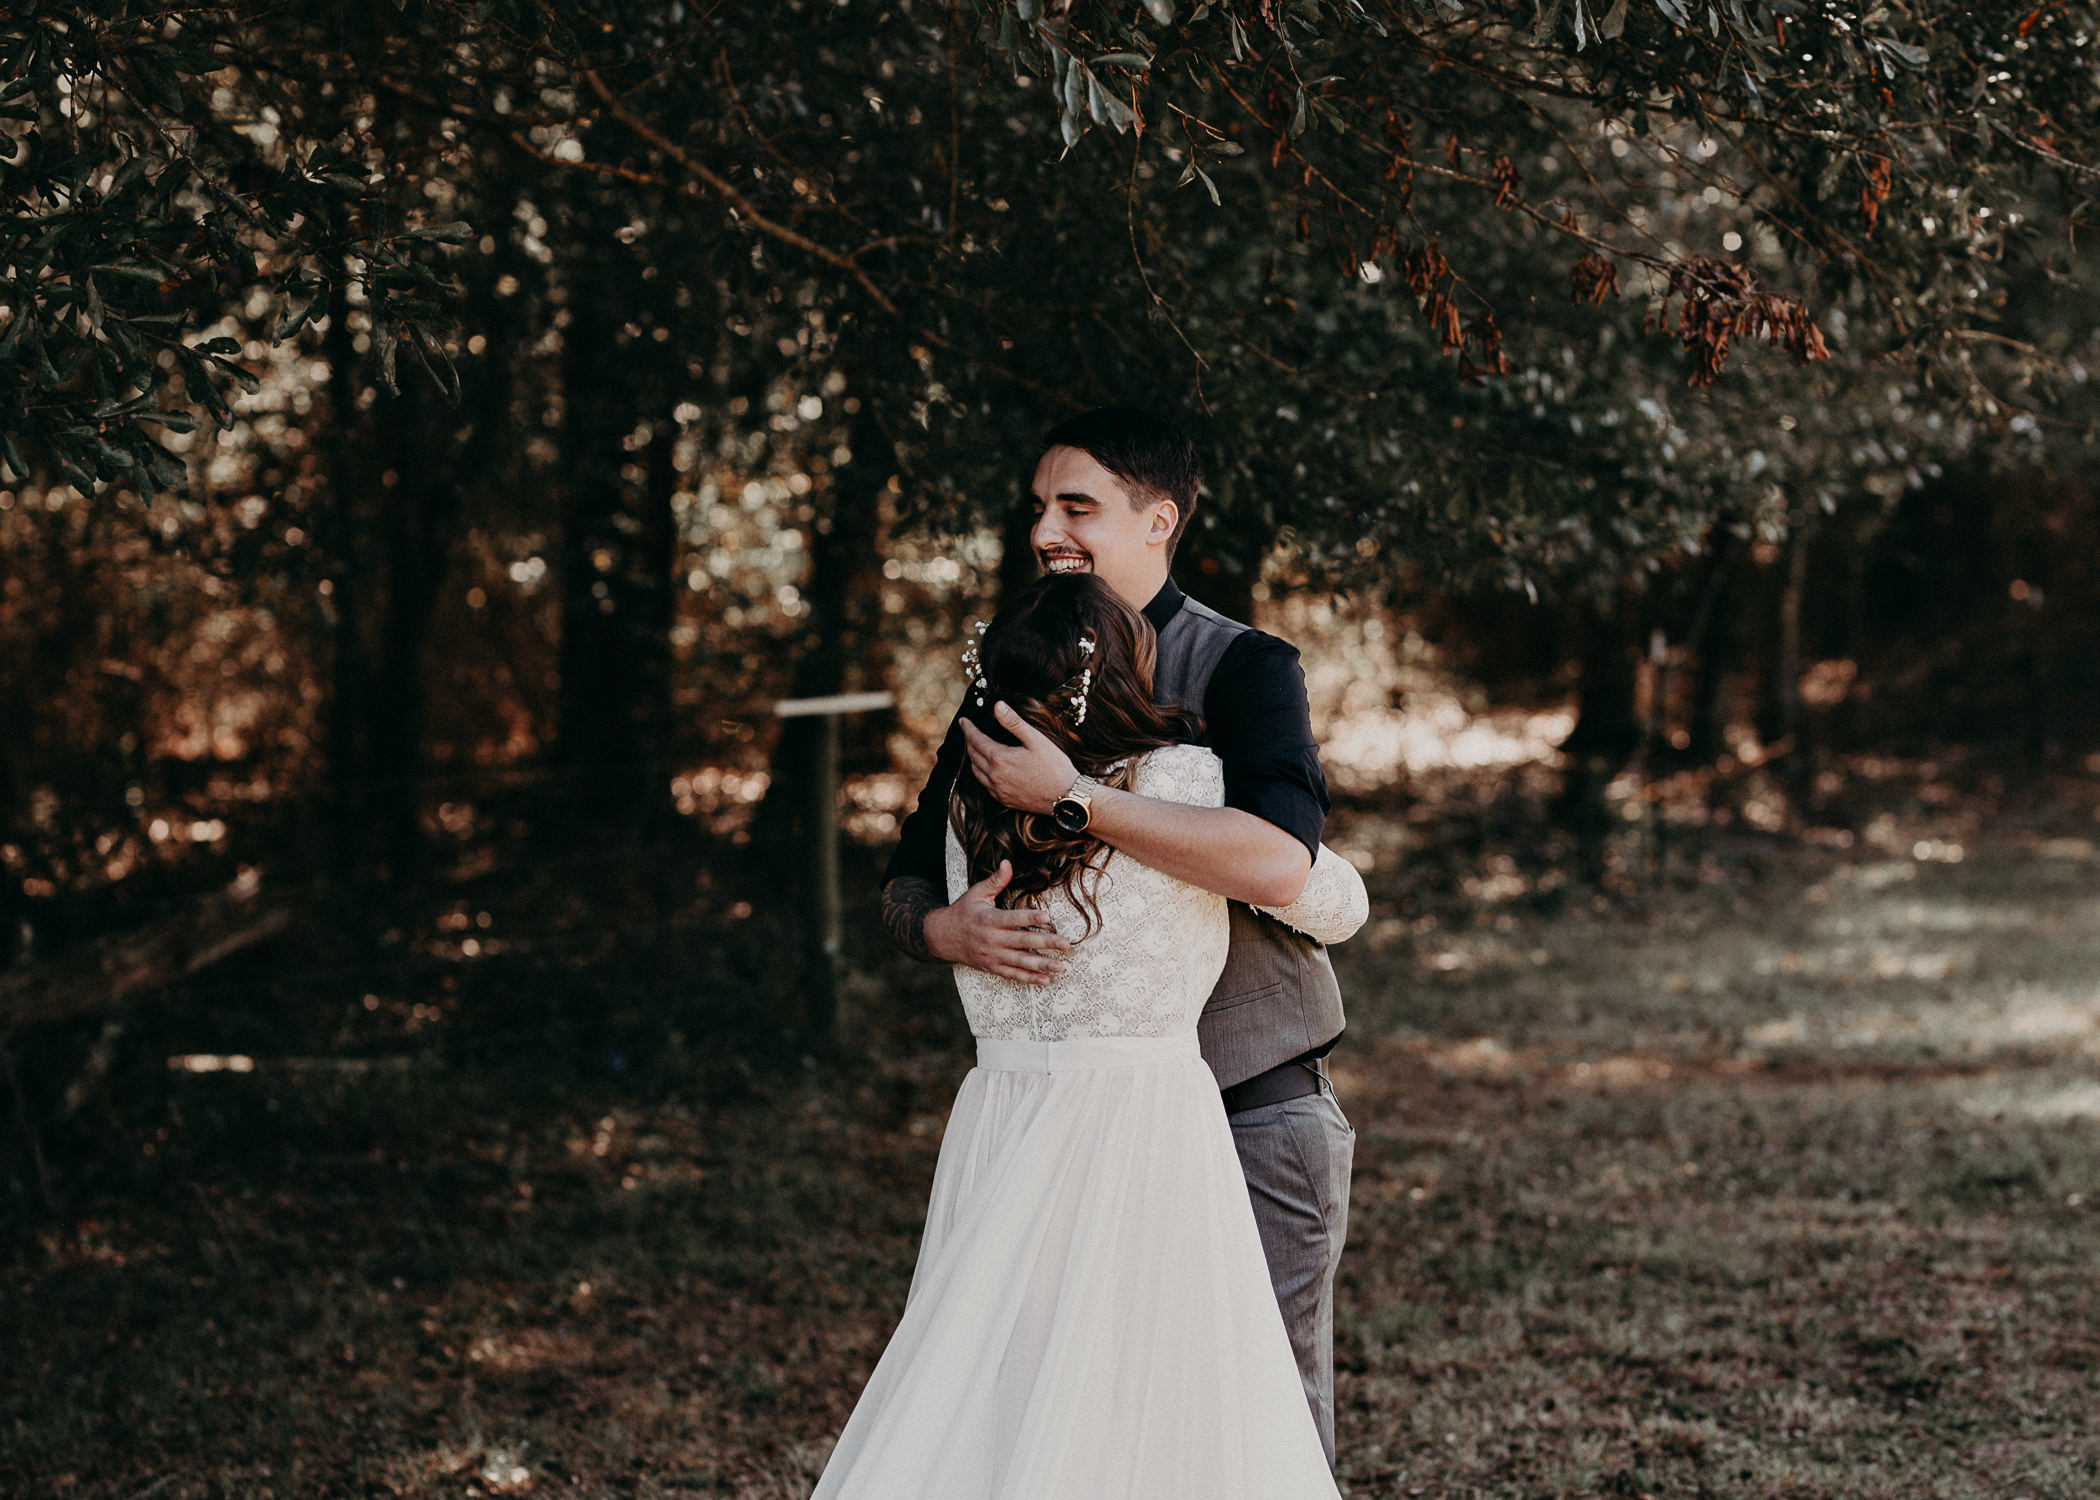 50 - Wedding first look : Atlanta wedding photographer .jpg